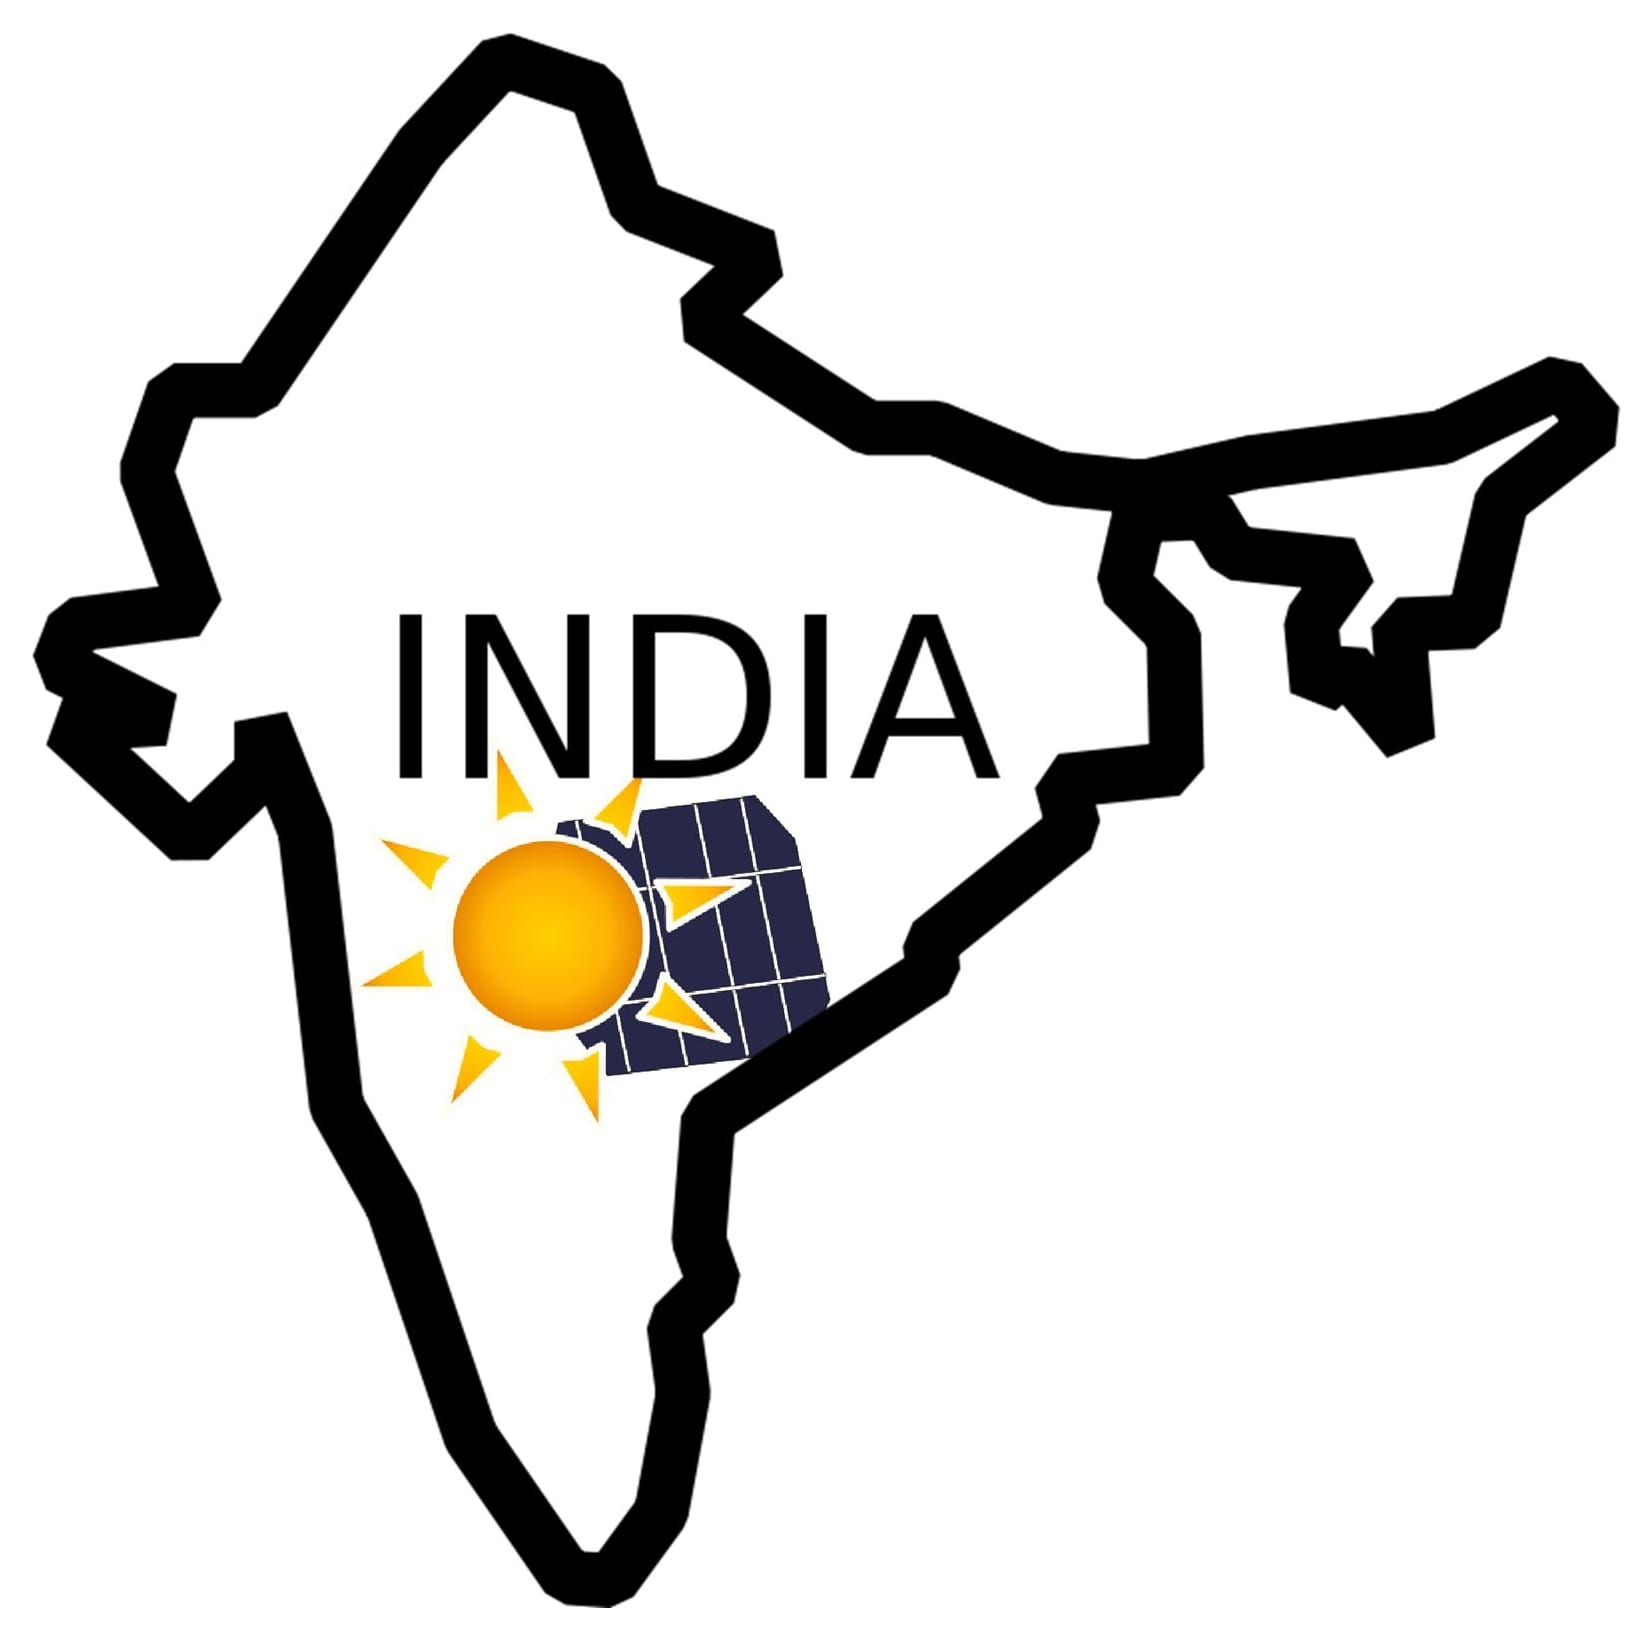 India could have a bright future with solar energy